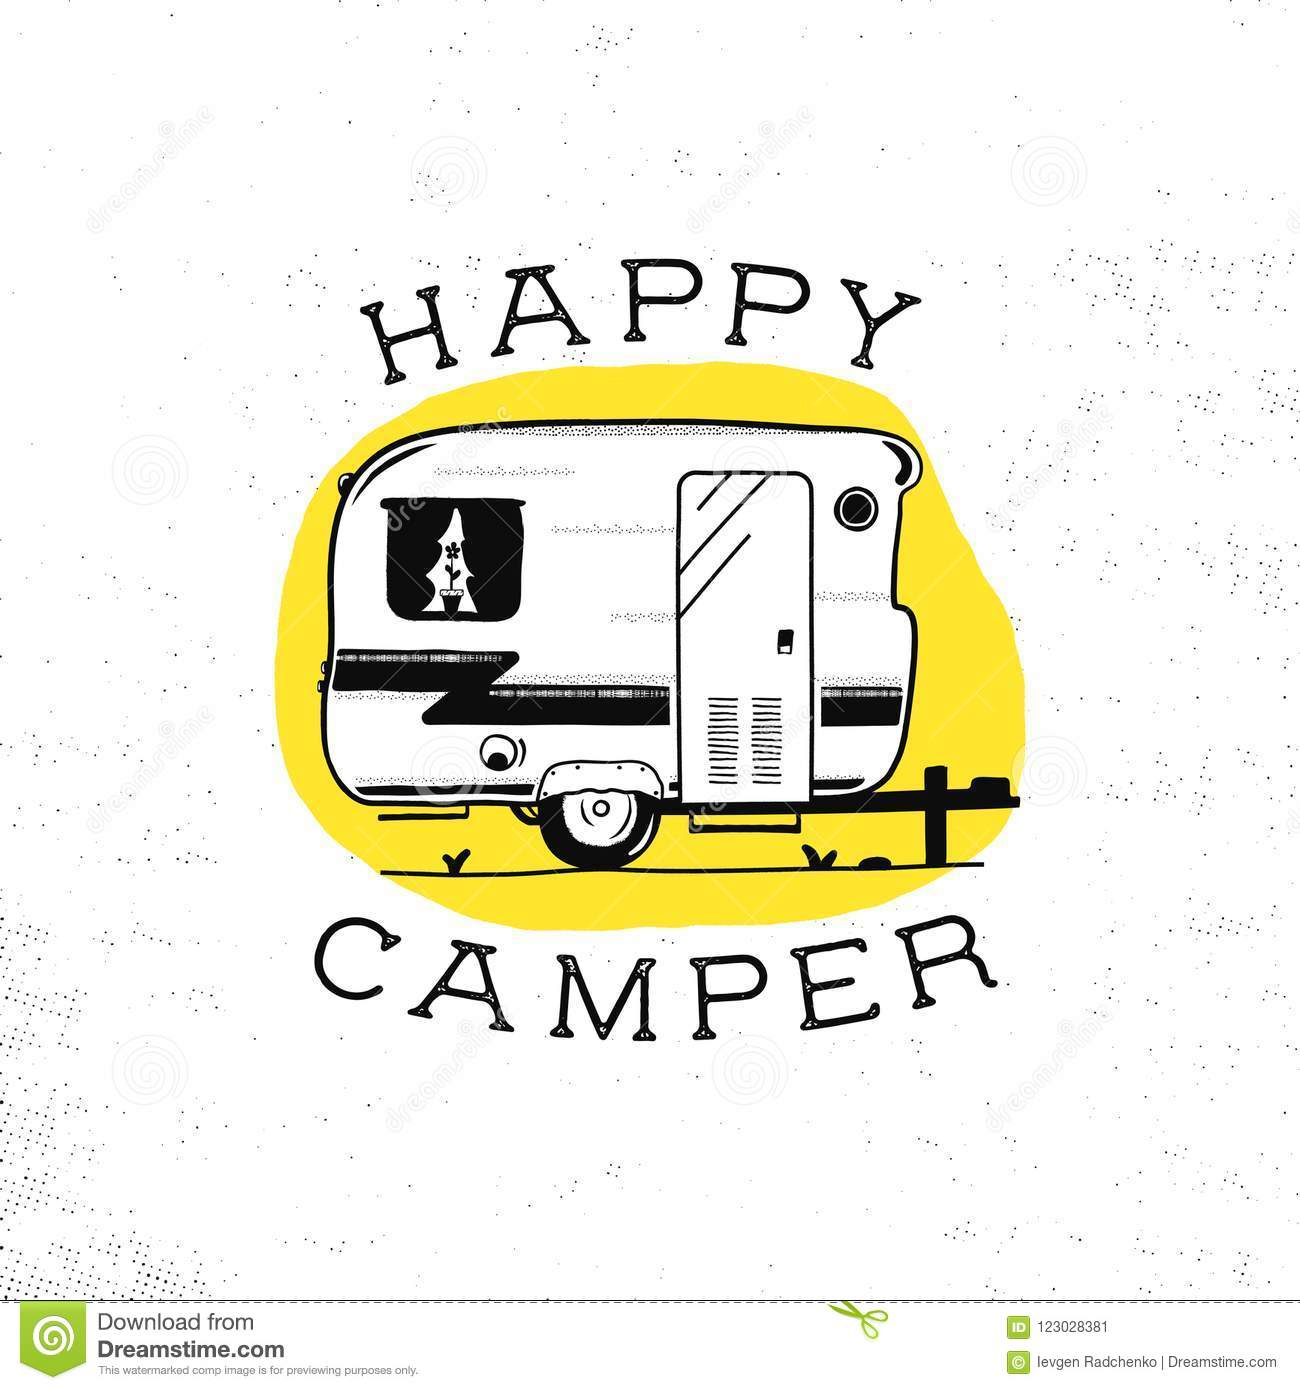 Mobile Recreation. Happy Camper Trailer In Sketch Silhouette ... on mobile home fabric, mobile home coach, mobile home movers, mobile home paradise, mobile home white background, mobile home light, mobile home composition, mobile home photography, mobile home christmas, mobile home texture, mobile home landscape, mobile home outline, mobile home vintage, mobile home color, mobile home nova, mobile home redneck, mobile home people, mobile home clipart, mobile home graphics, mobile home size,